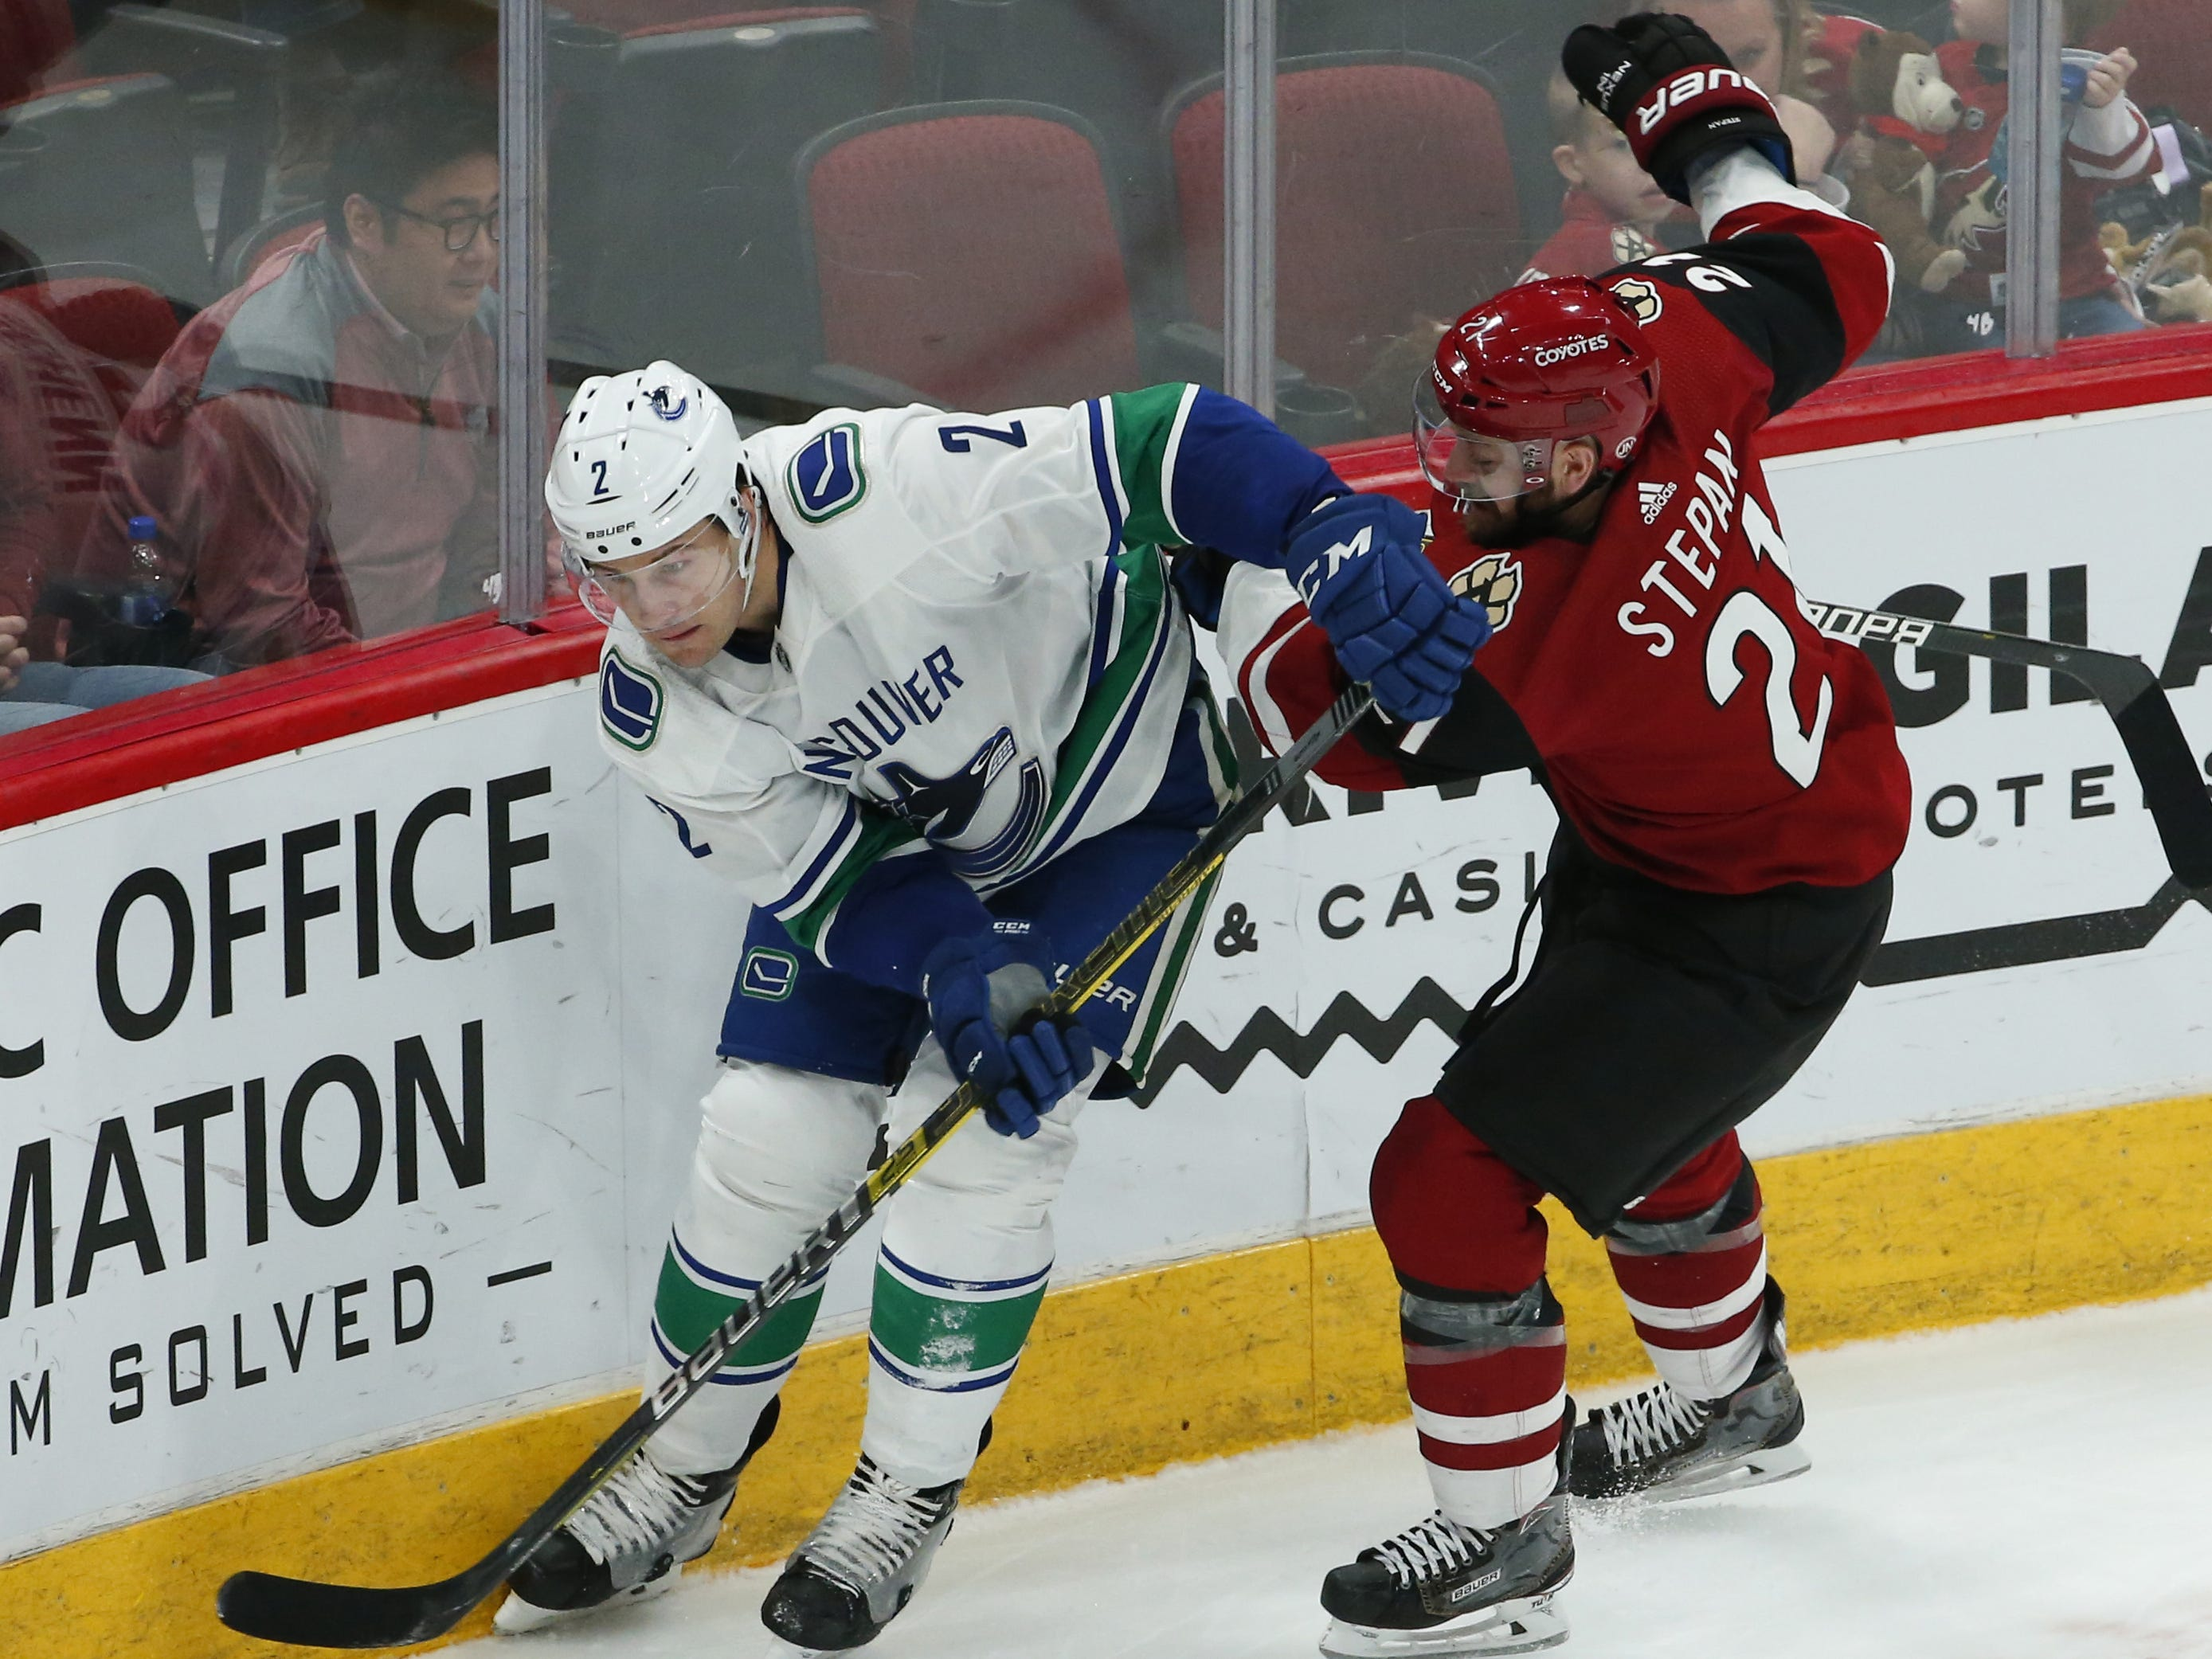 Vancouver Canucks defenseman Luke Schenn (2) battles Arizona Coyotes center Derek Stepan (21)  for the puck during a NHL game at Gila River Arena in Glendale on February 28.